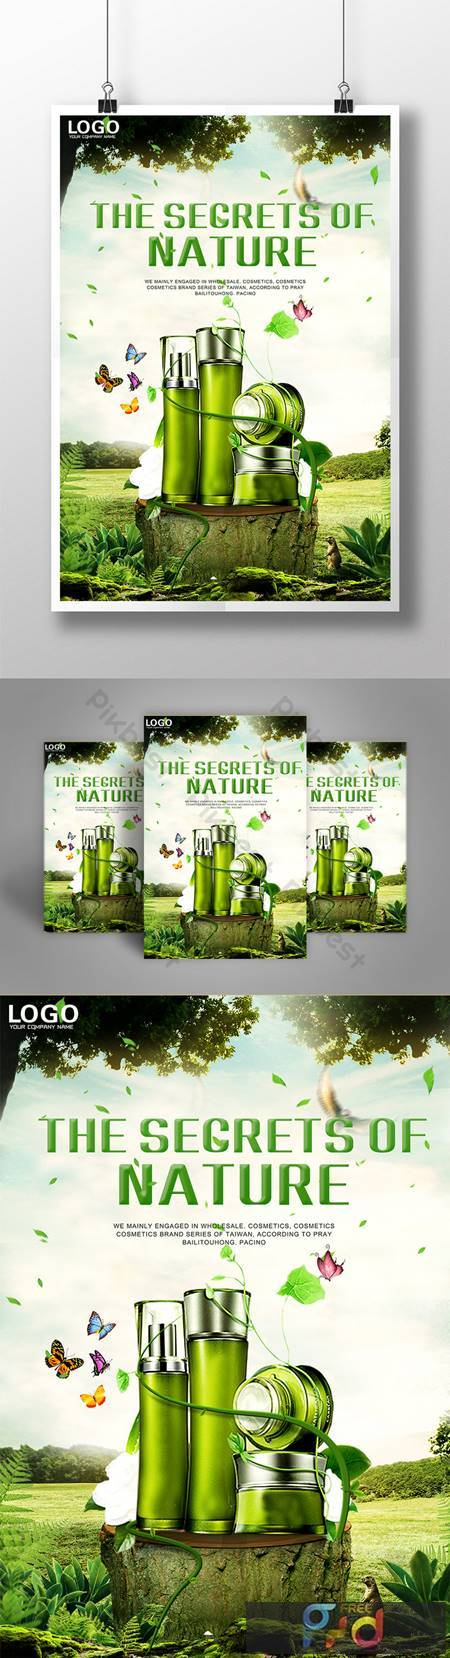 Clear Natural Cosmetics Poster Download 16394 1